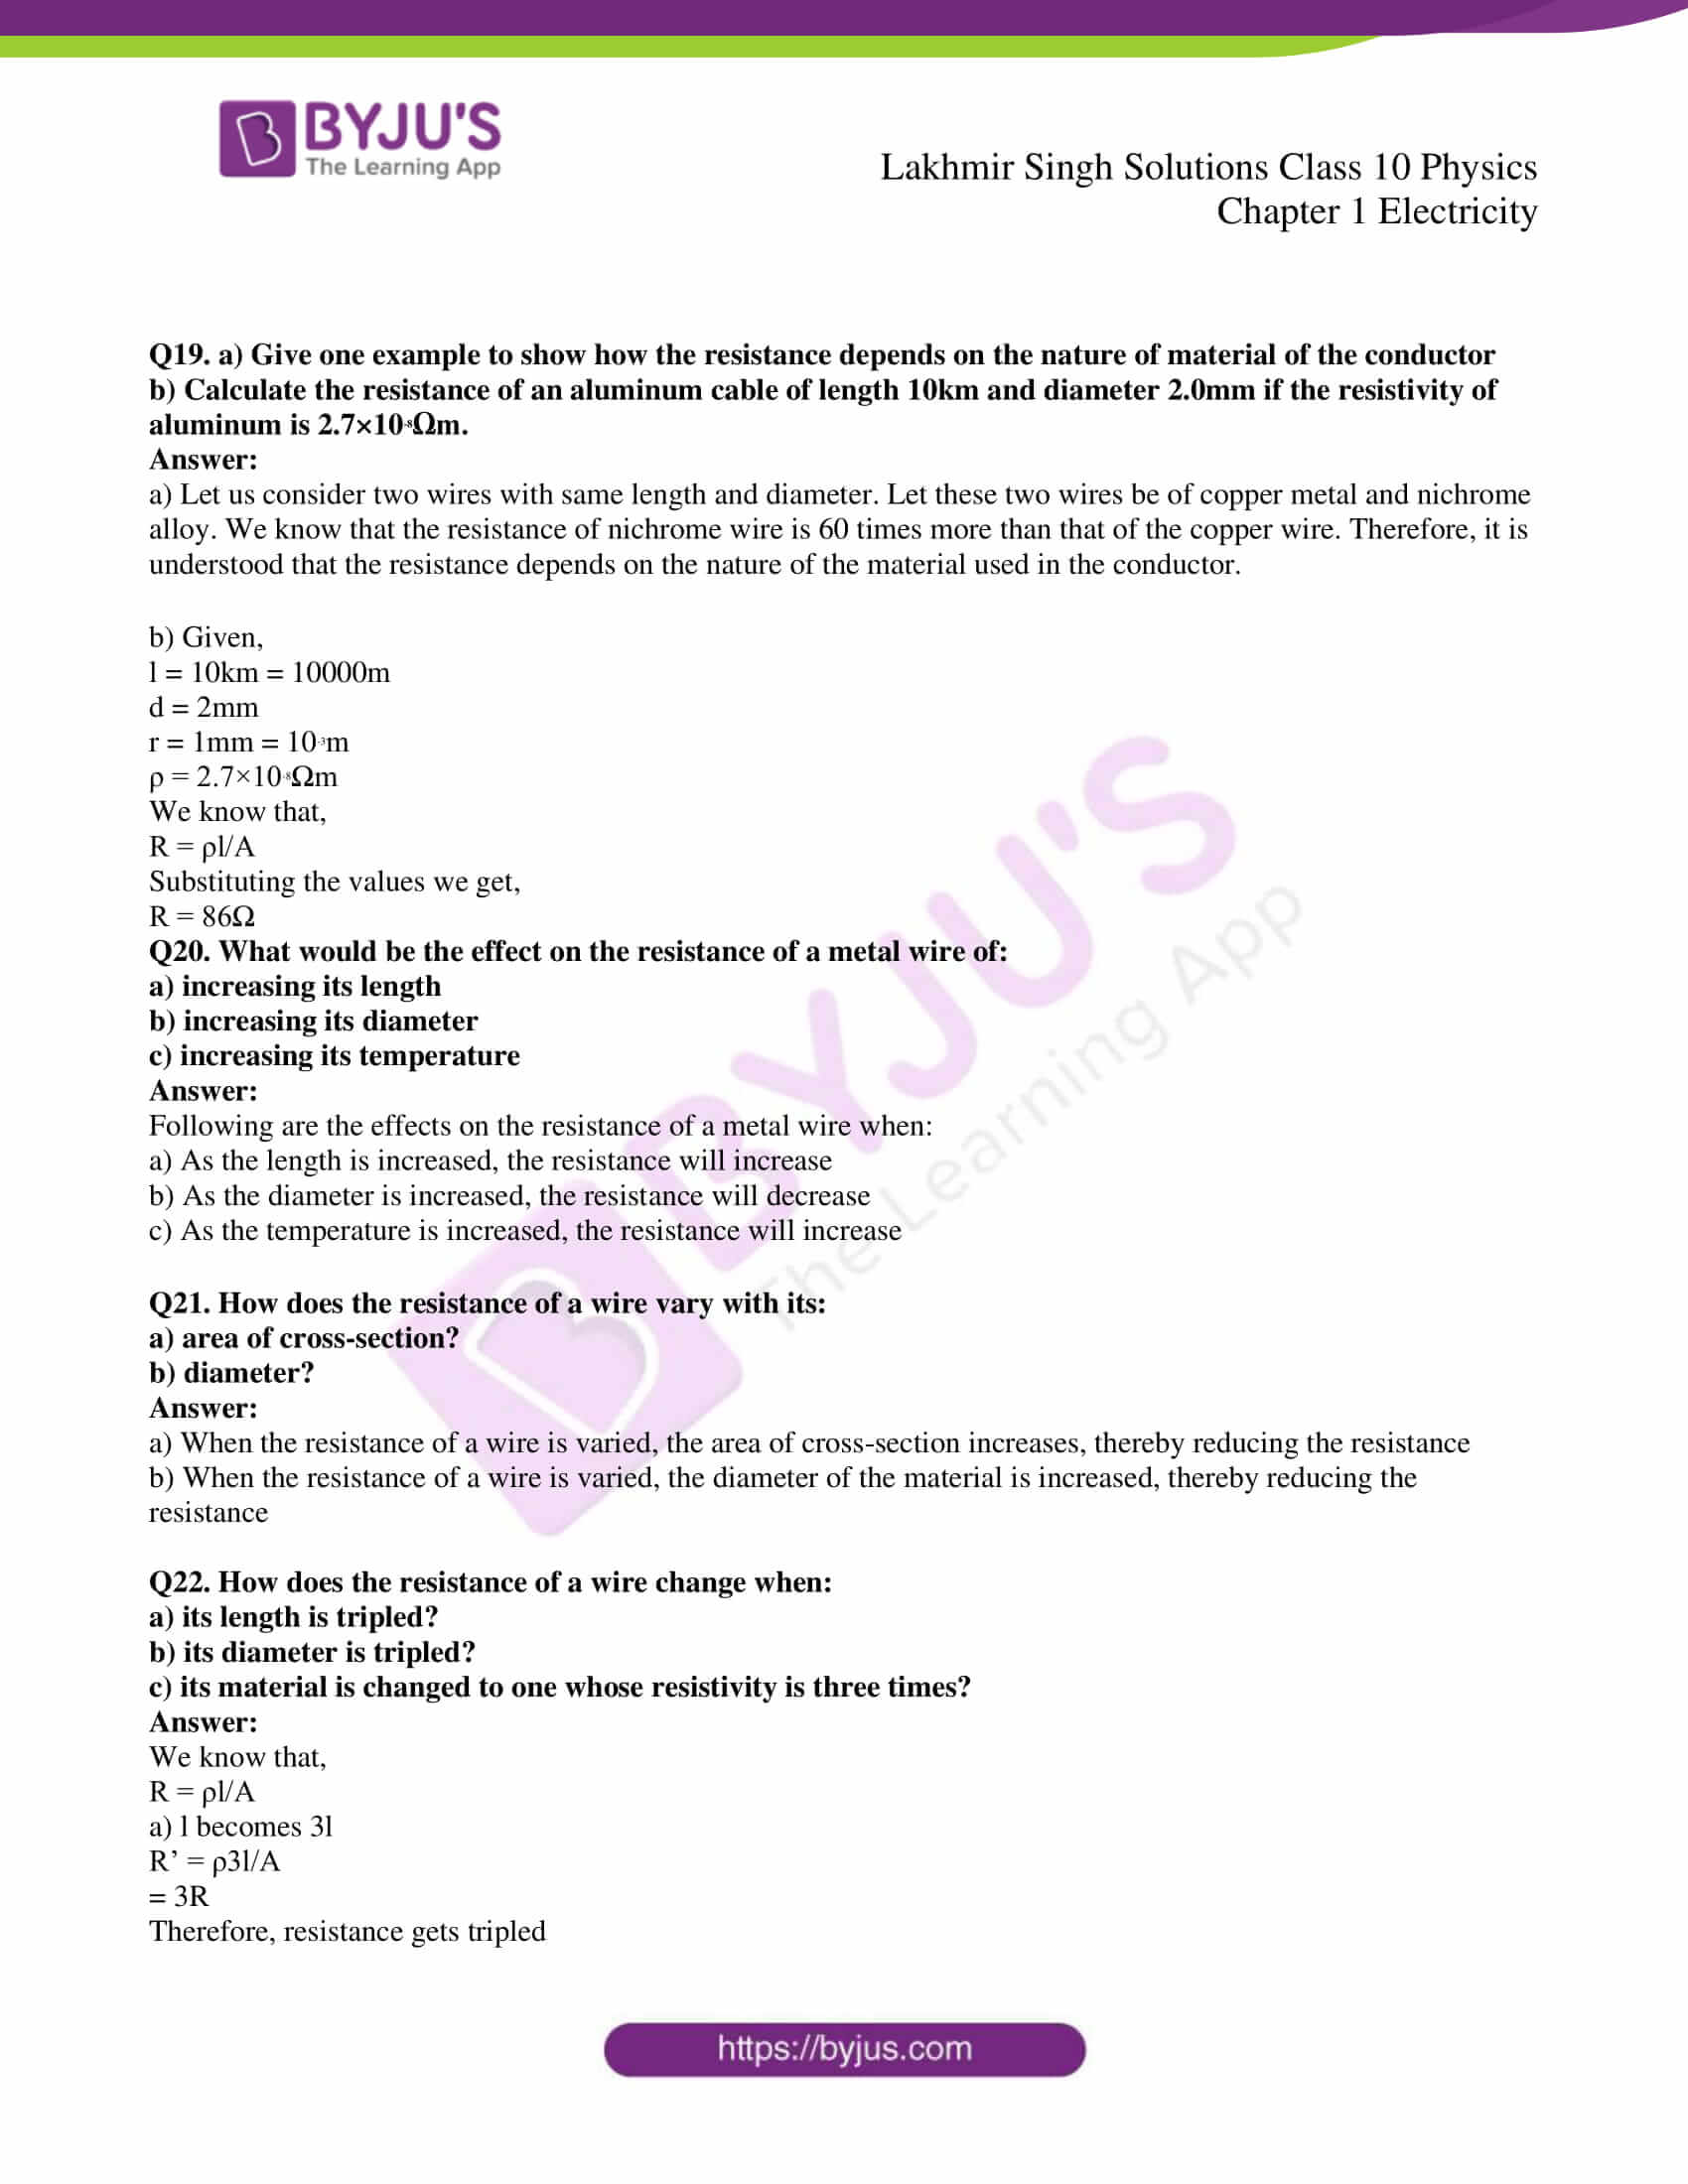 lakhmir singh solutions class 10 physics chapter 1 31